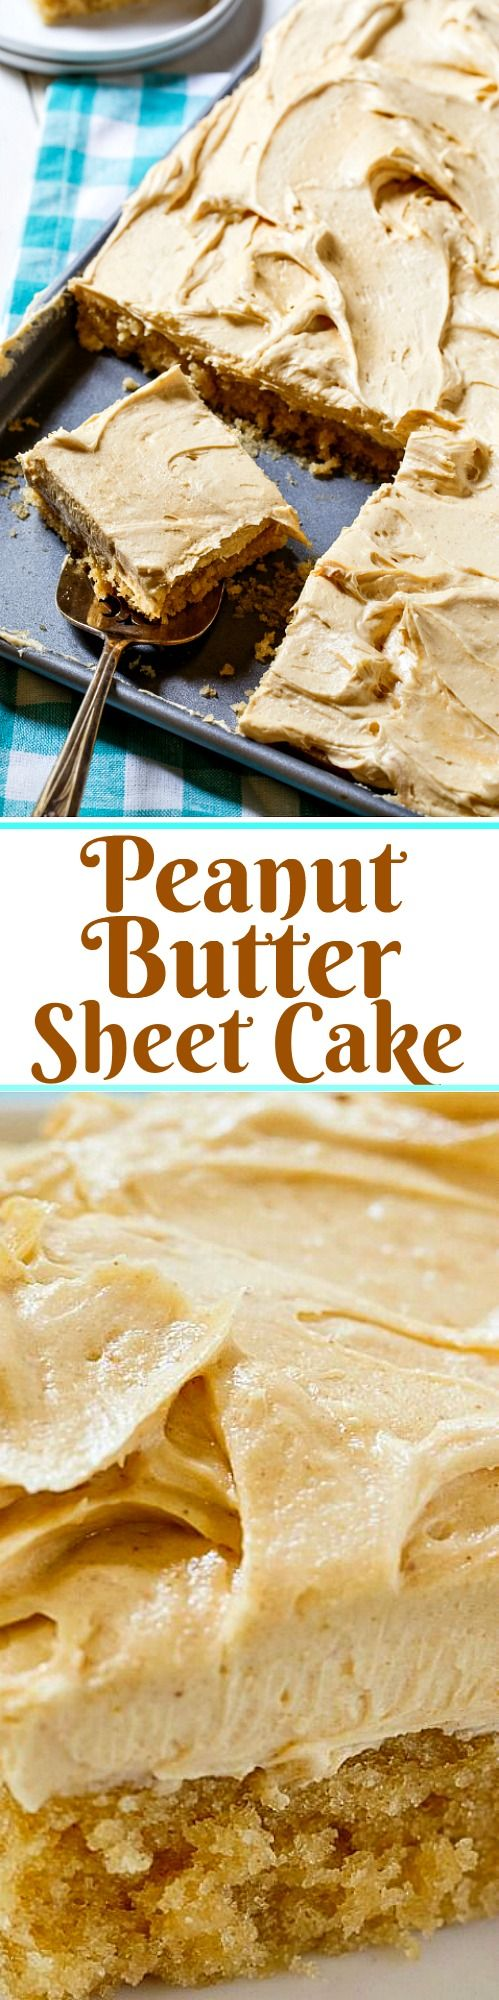 Peanut Butter Sheet Cake with a thick and fluffy peanut butter frosting.